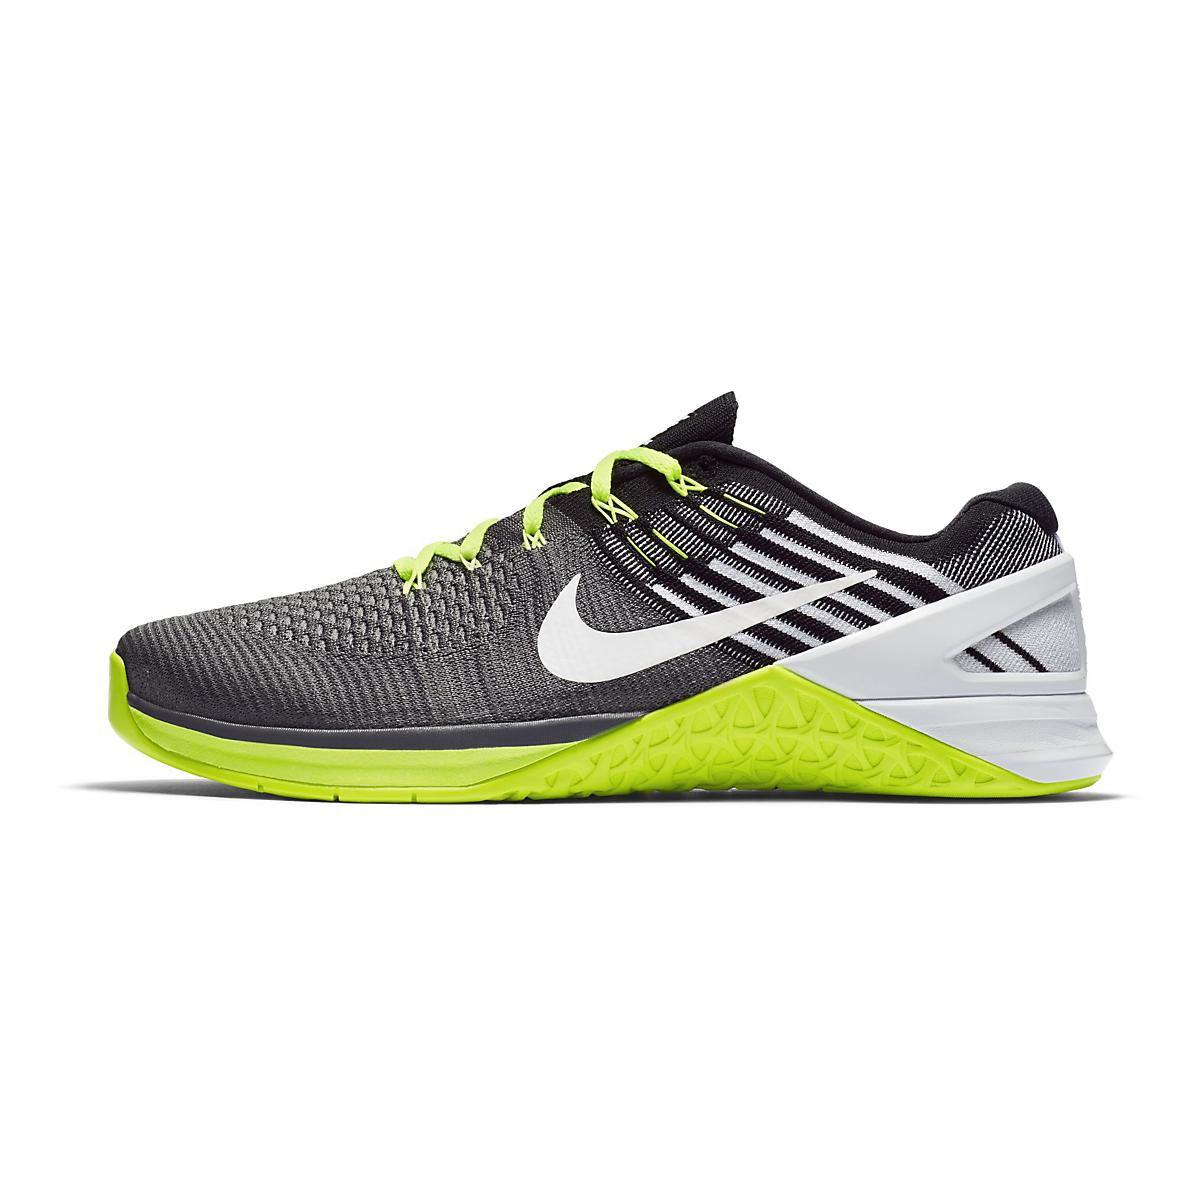 c99240afb51 Men s Nike MetCon DSX Flyknit Training Shoes